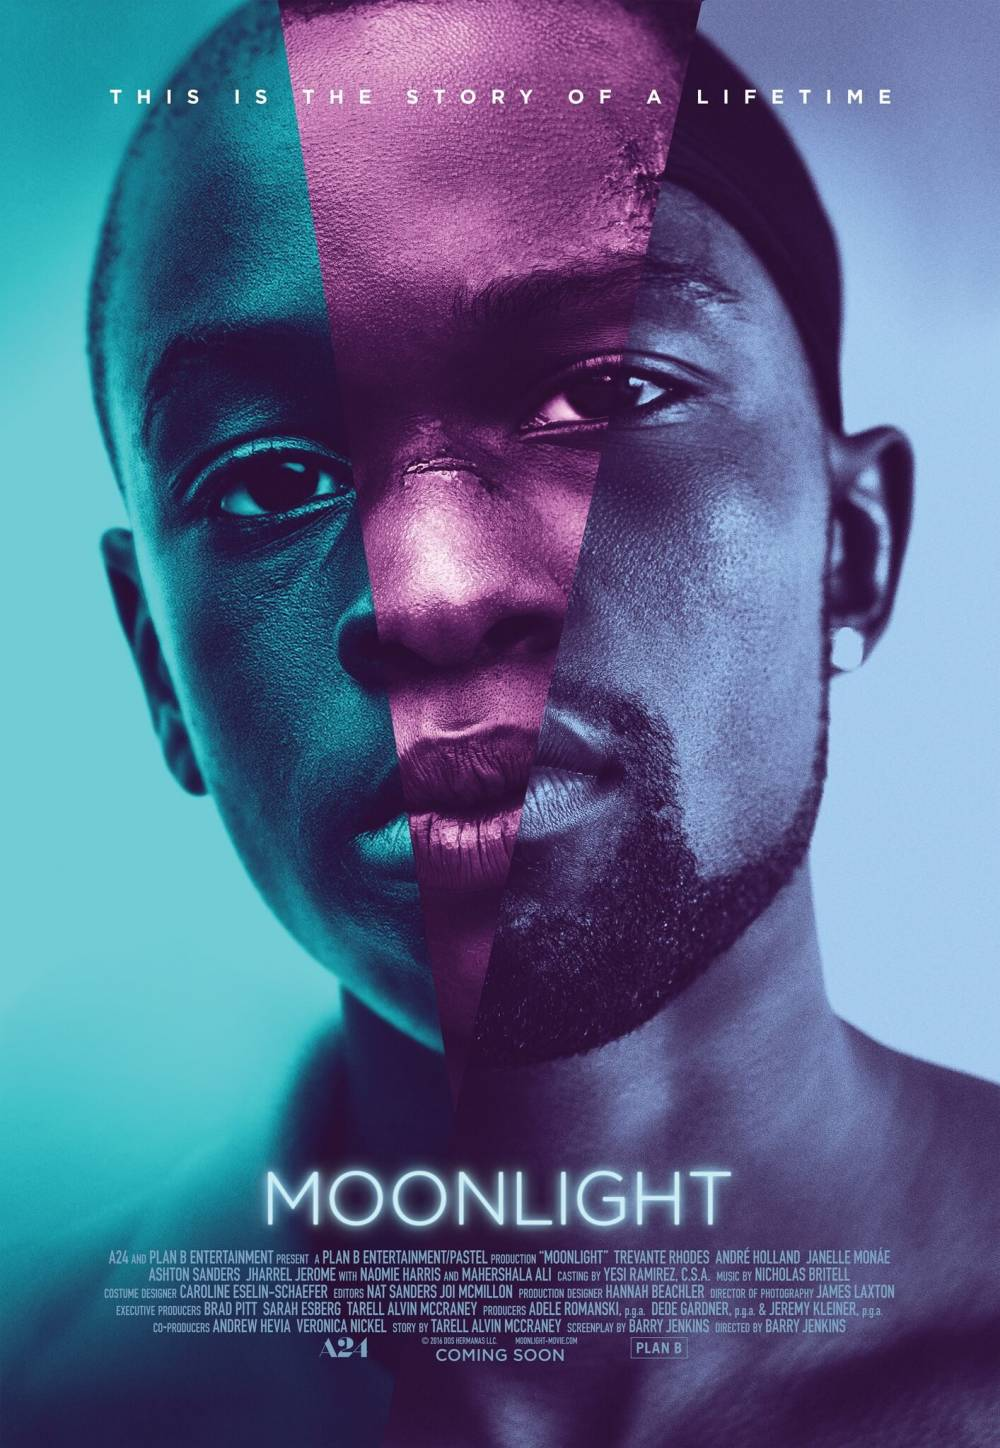 First Trailer For 'Moonlight' Proves I've Underestimated It